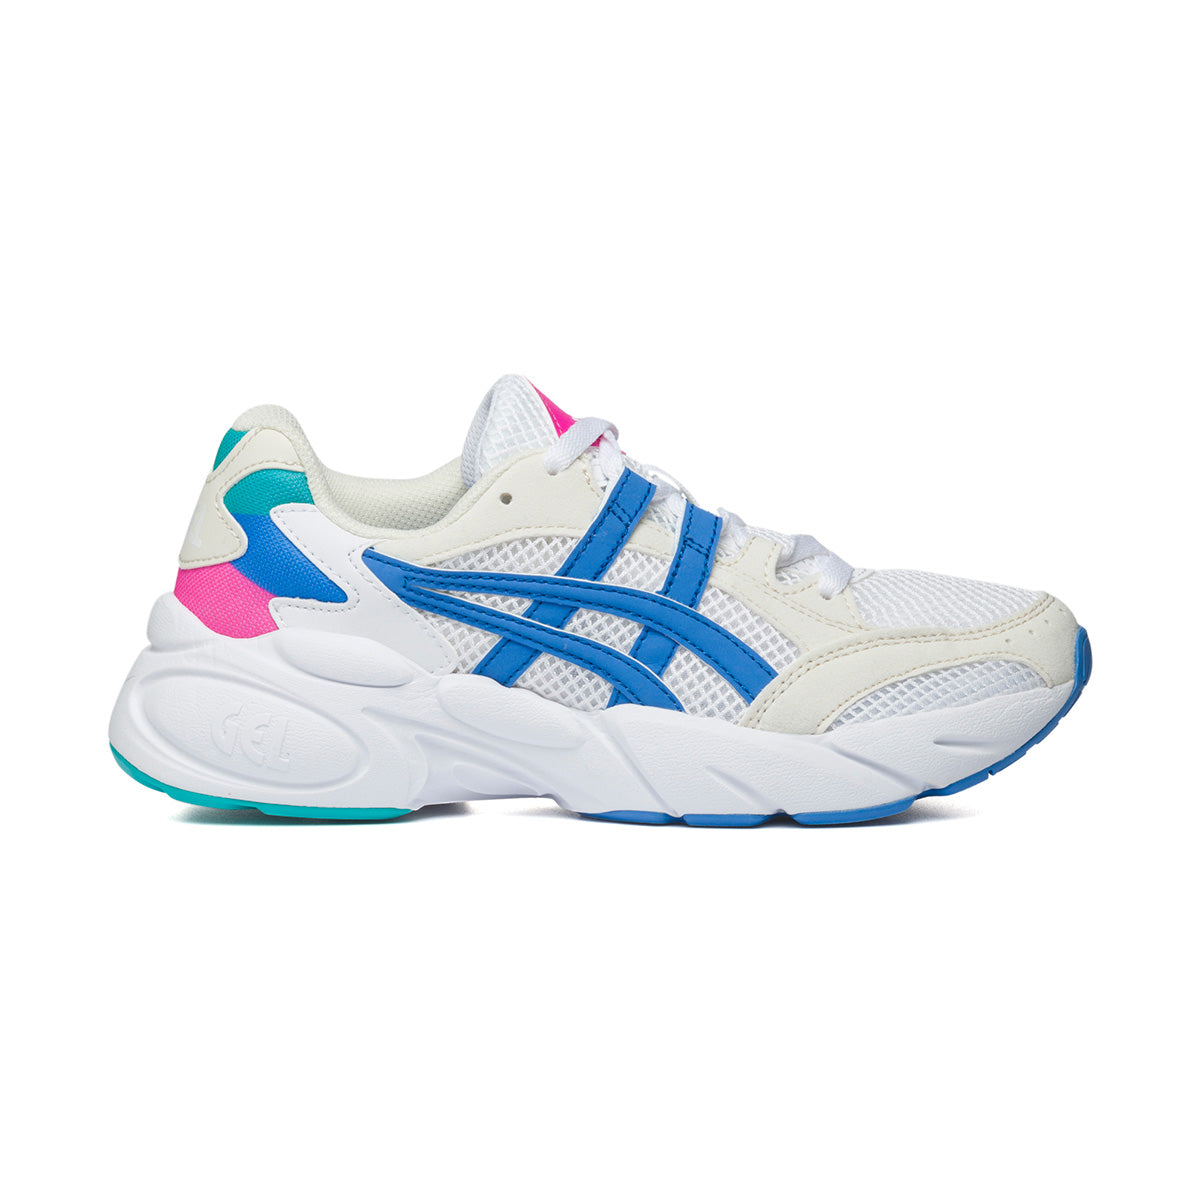 Sneakers Asics Gel-Bnd Gs, Brand, SKU s352000001, Immagine 0